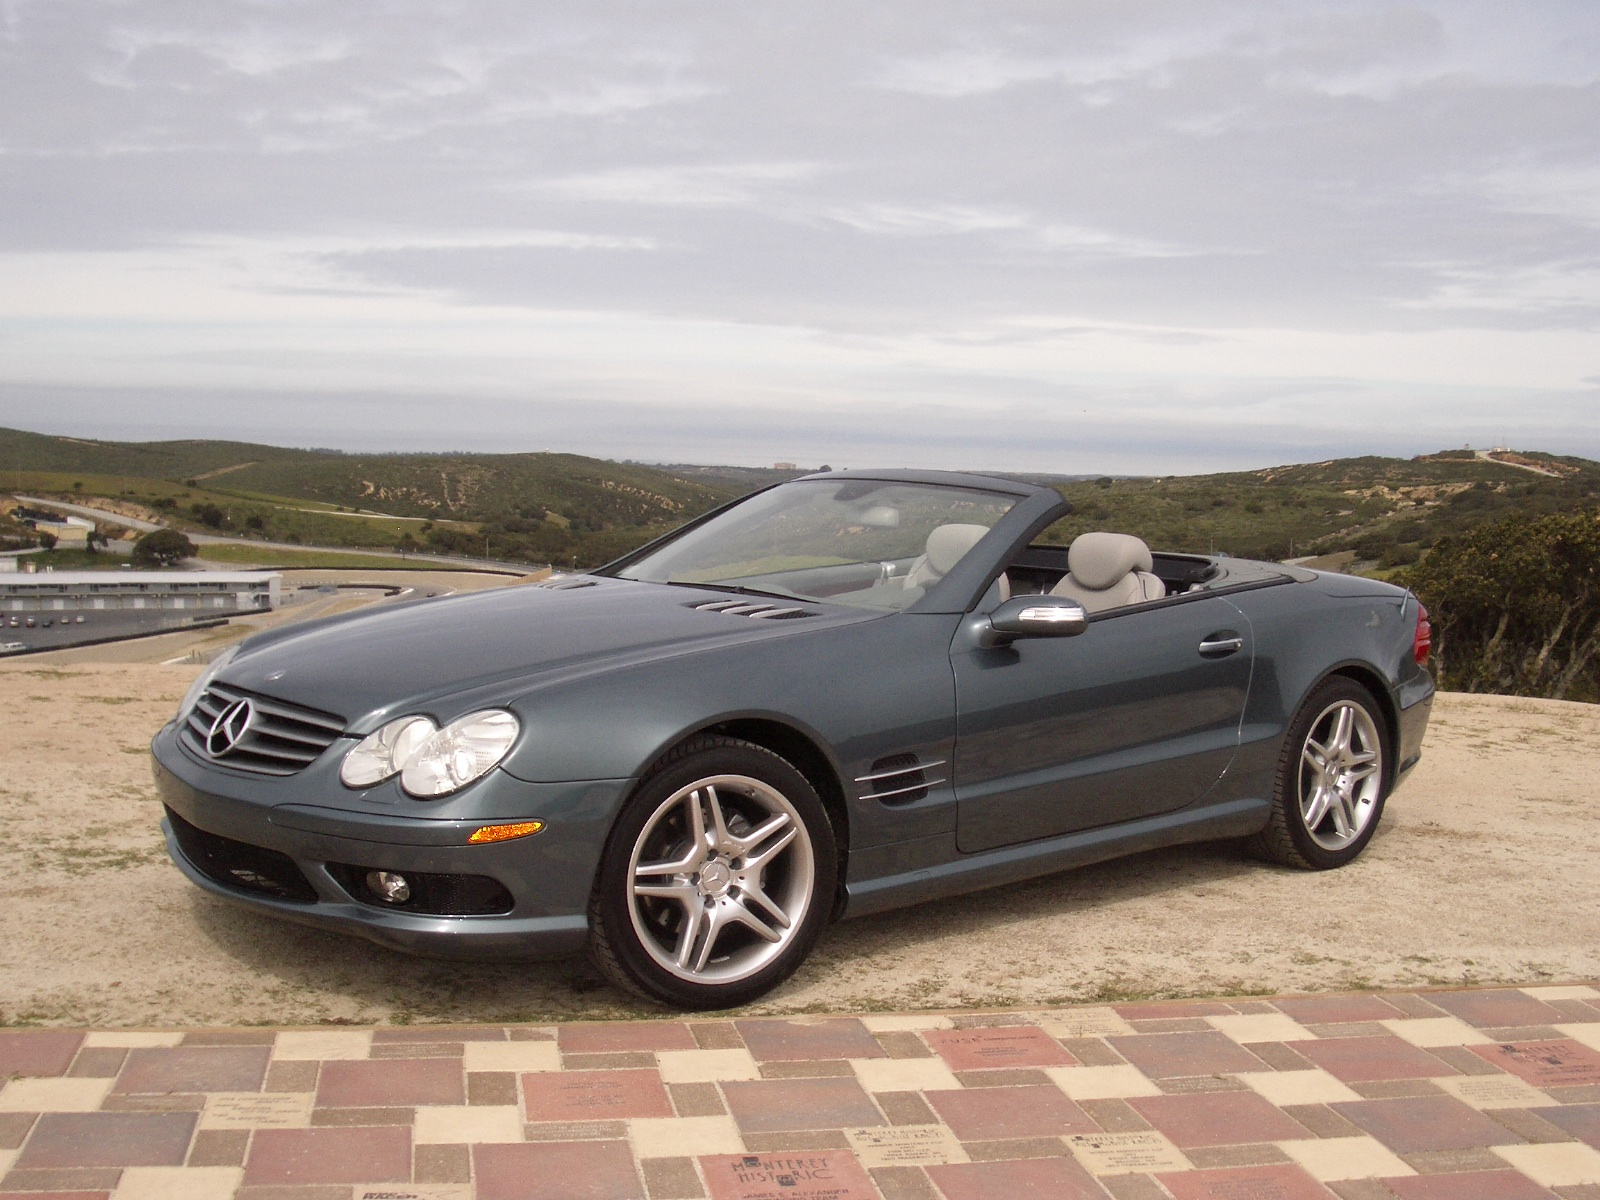 Mercedes benz sl 500 technical details history photos on for Mercedes benz performance parts